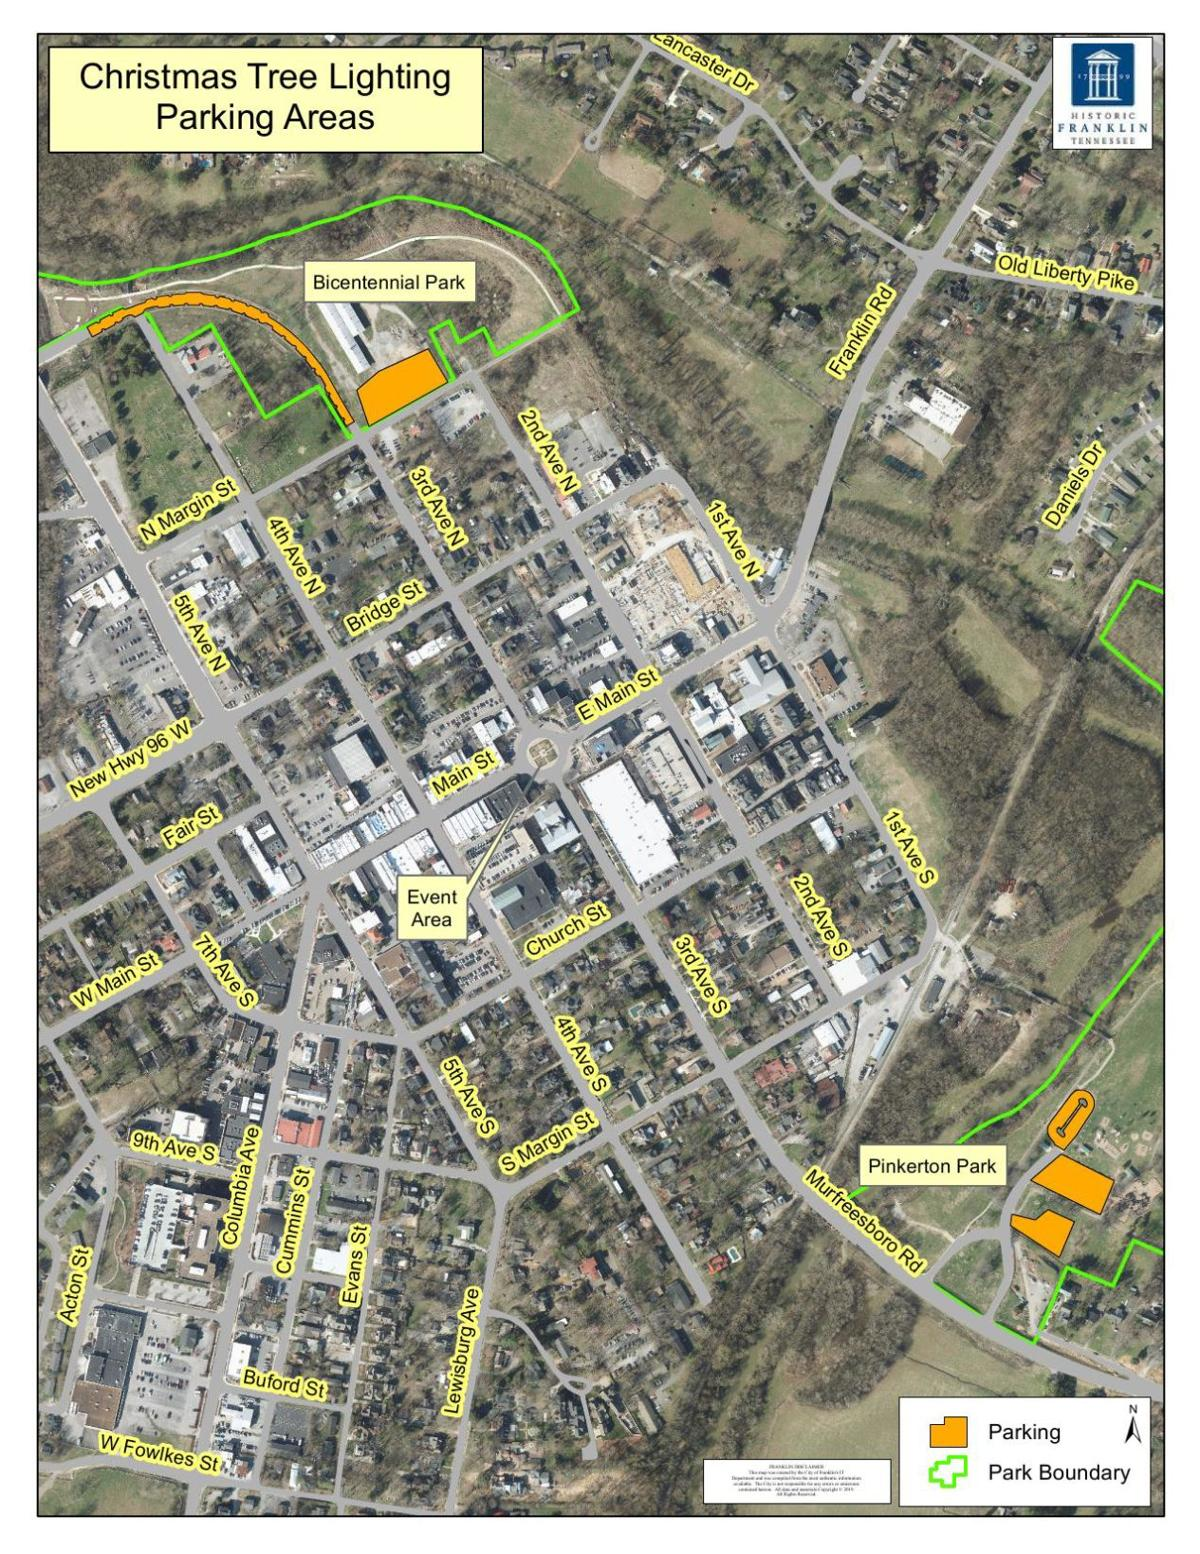 Parking Areas in Downtown Franklin for Events